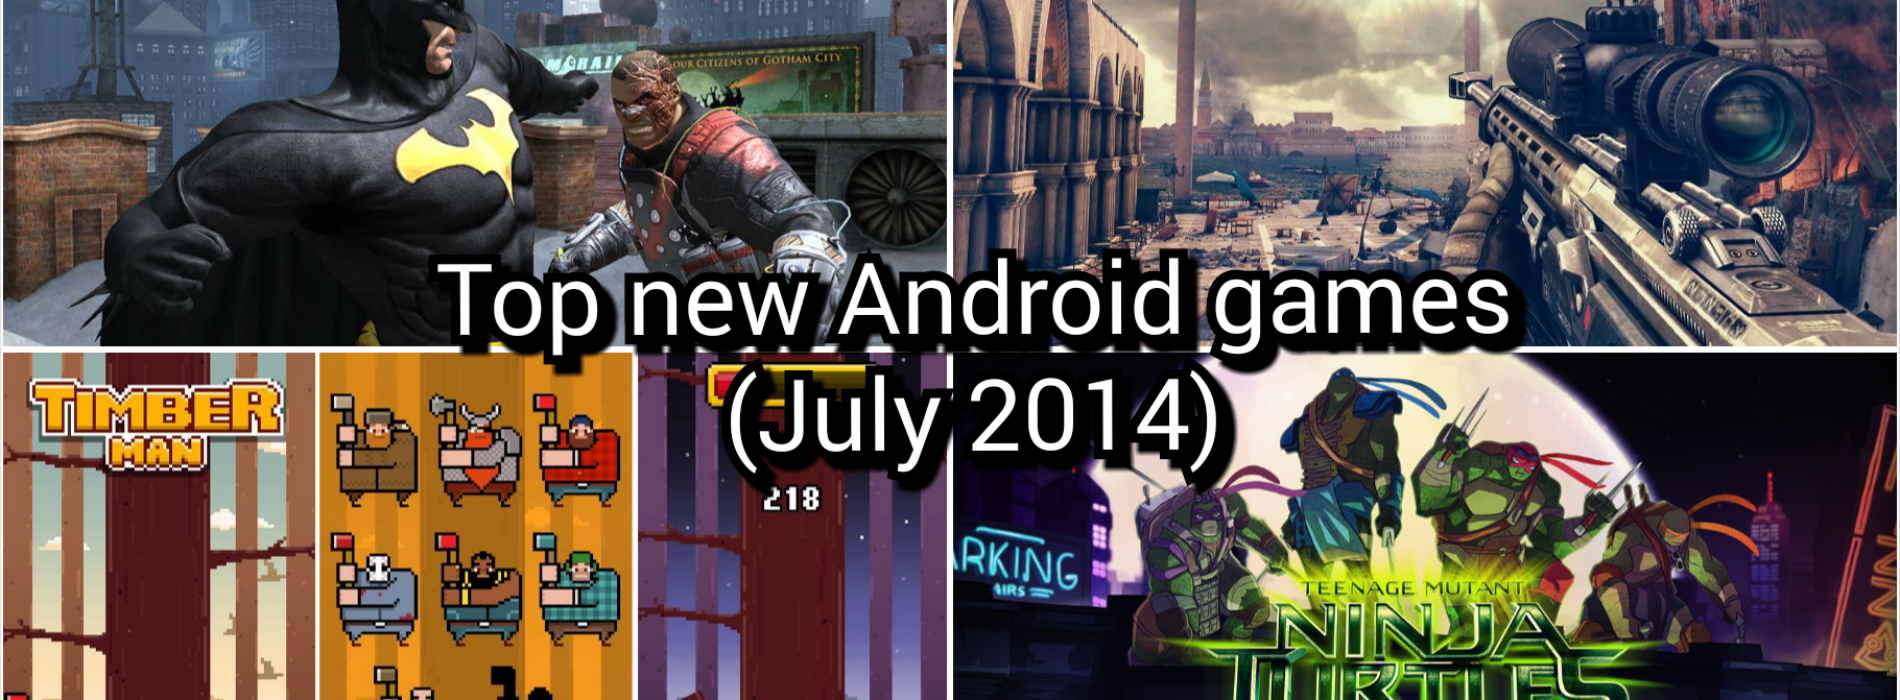 Top new Android games (July 2014)